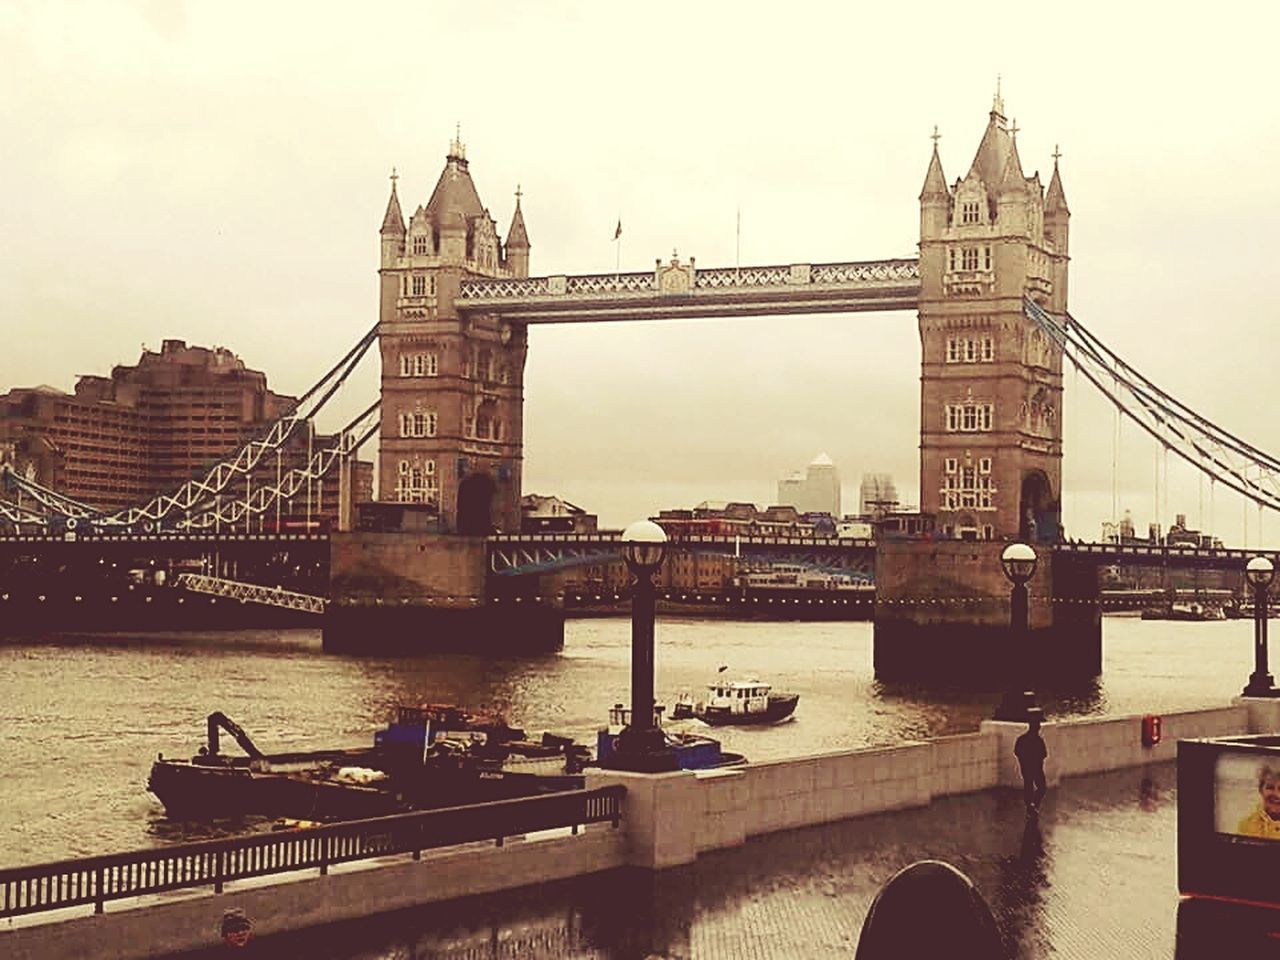 LONDON❤ London Tower Bridge  Towerbridge Hello World Taking Photos Hanging Out Enjoying Life Travel Photography Holidays Worldwide See What I See Travelling Travel Destinations Colour Of Life Worldwide_shot England🇬🇧 England Great Britain Großbritannien Landscape #Nature #photography Capture The Moment Landscape_Collection Brücke Bridge - Man Made Structure